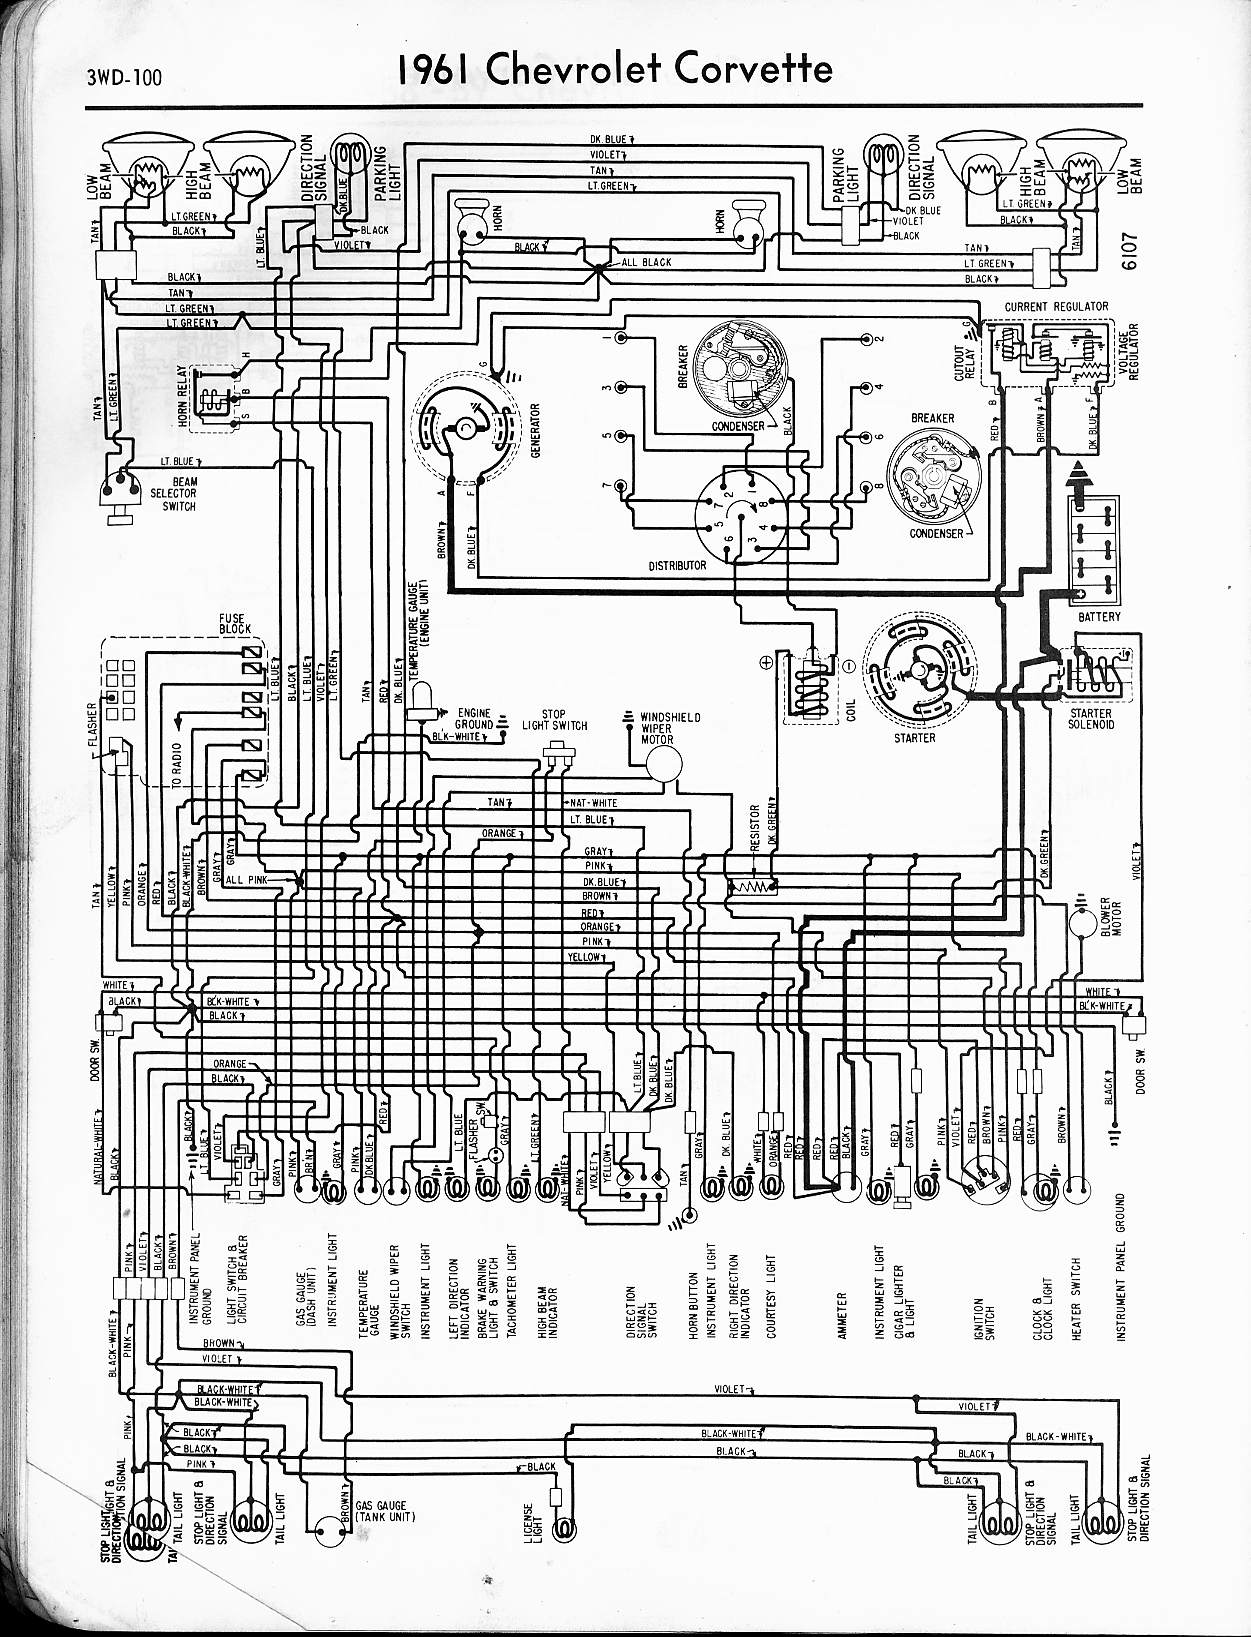 57 65 chevy wiring diagrams Wiring Diagram for 1967 Chevy Impala 1961 corvette